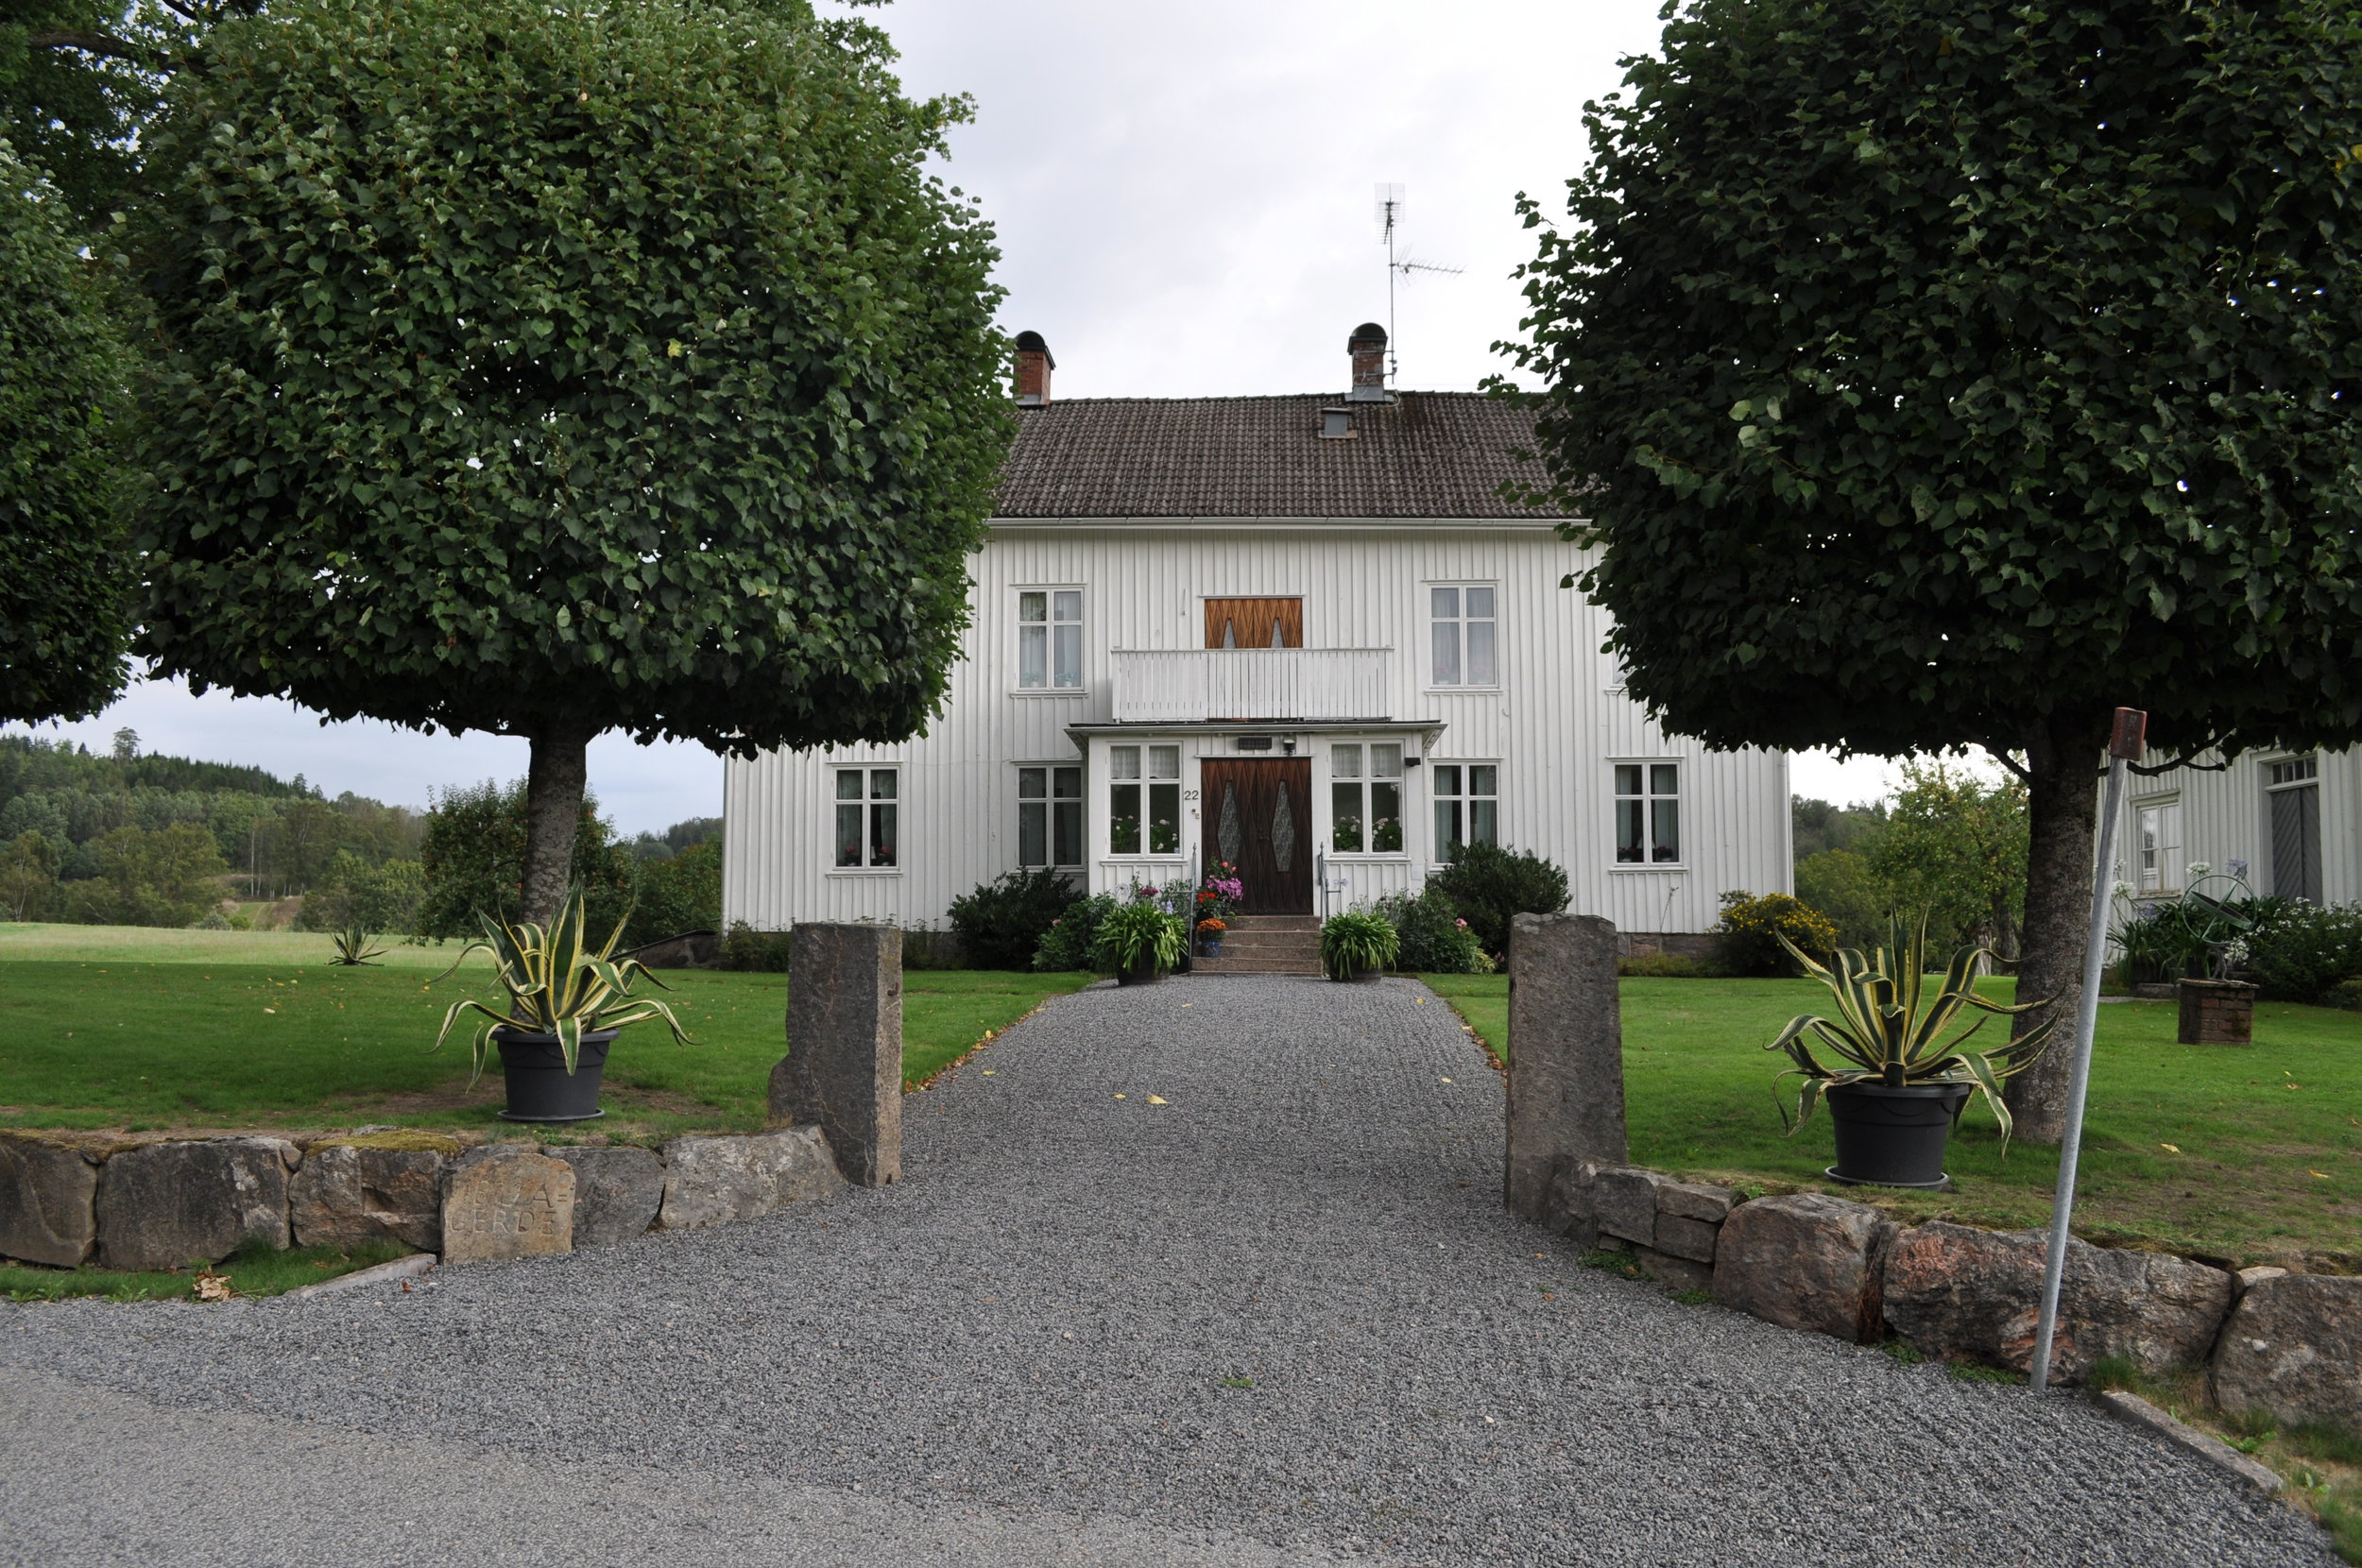 Family home of my great-grandfather, Harald